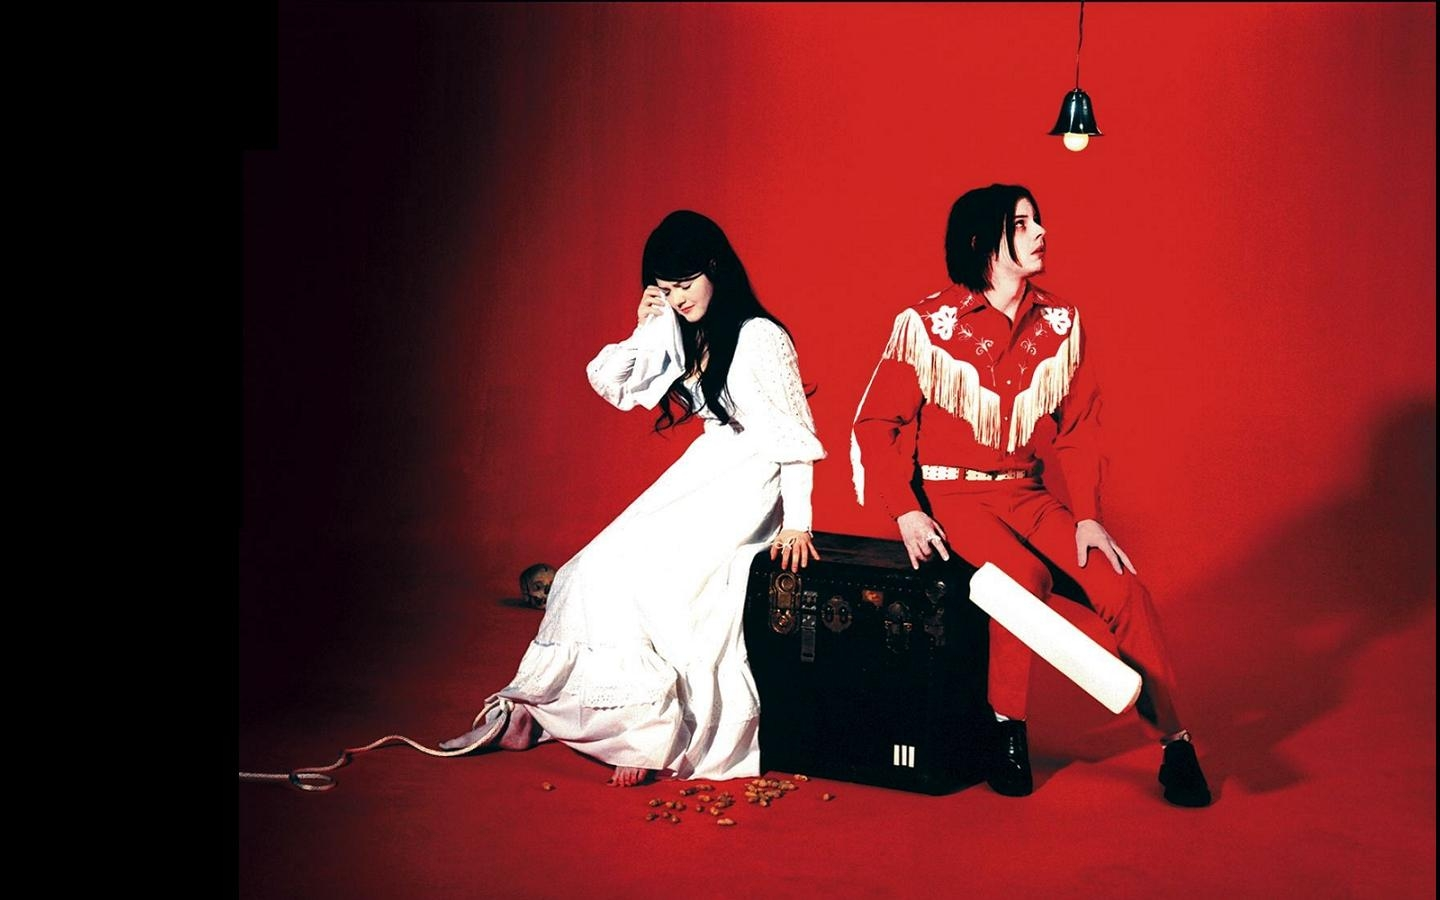 The White Stripes: Jack and Meg are brothers